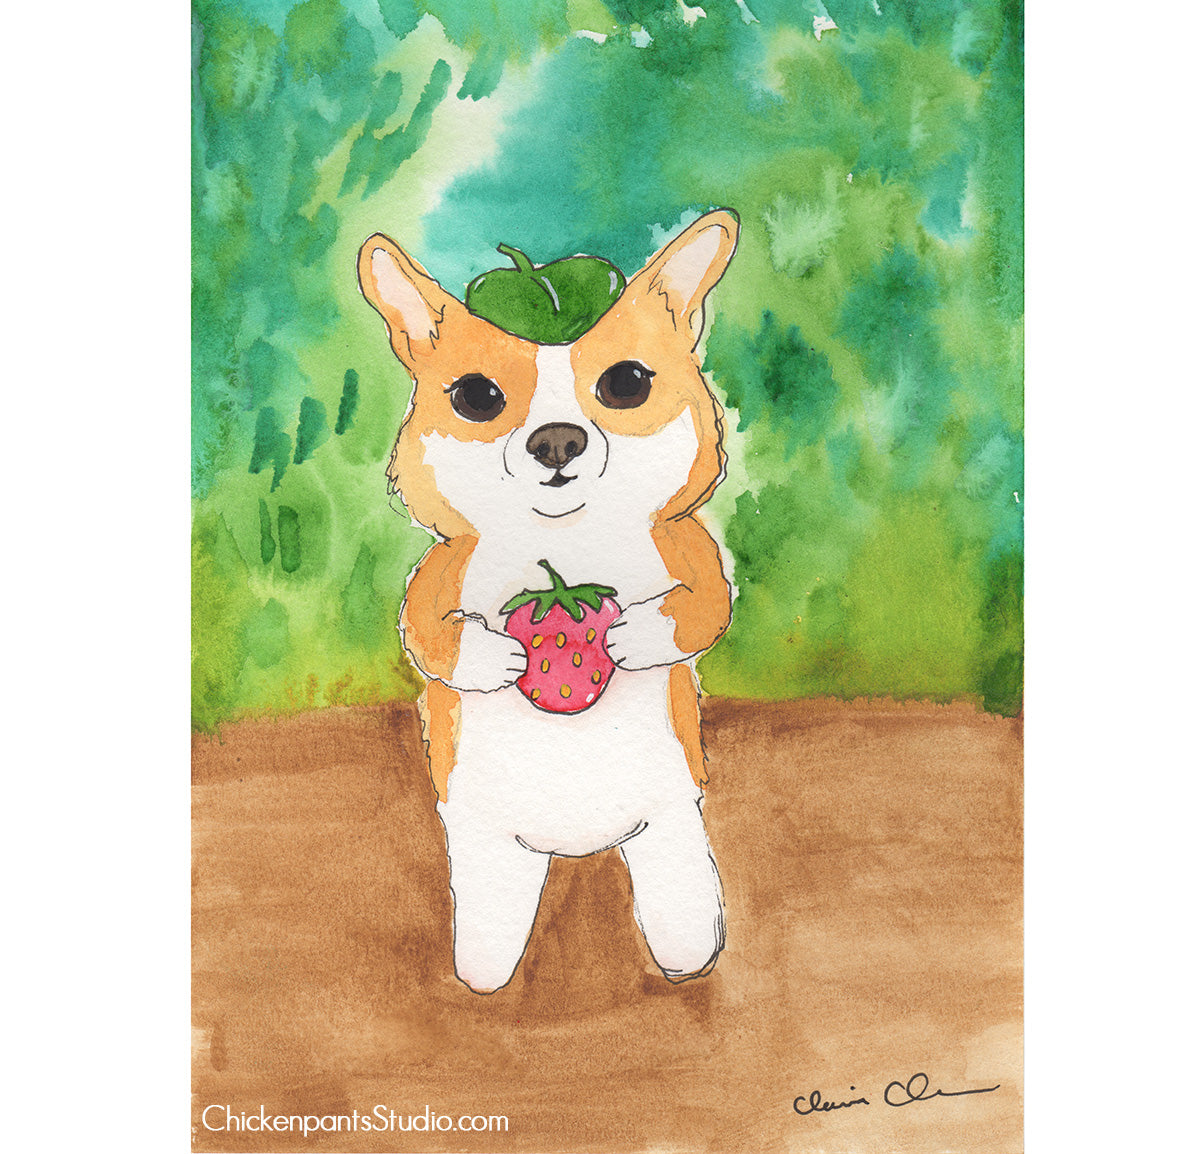 Forest Corgi - Original Corgi Painting